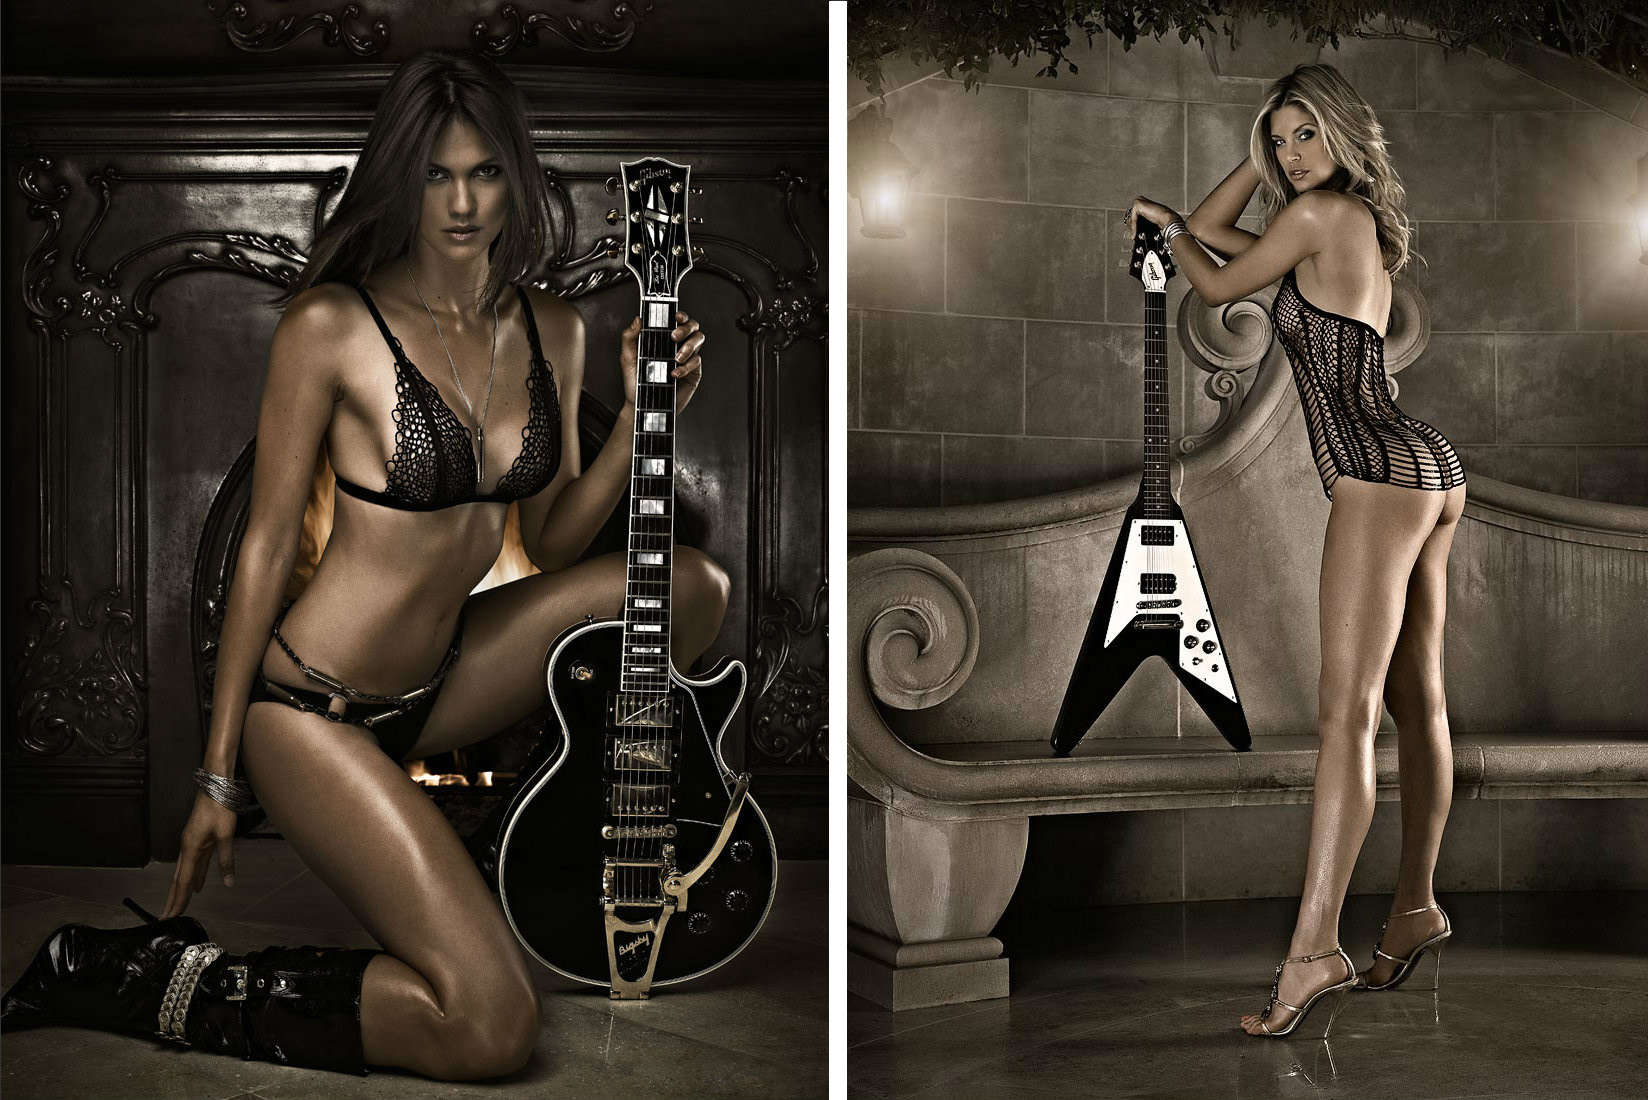 sexy girl with classic vintage guitar photographed by Vancouver editorial glamour photographer Waldy Martens